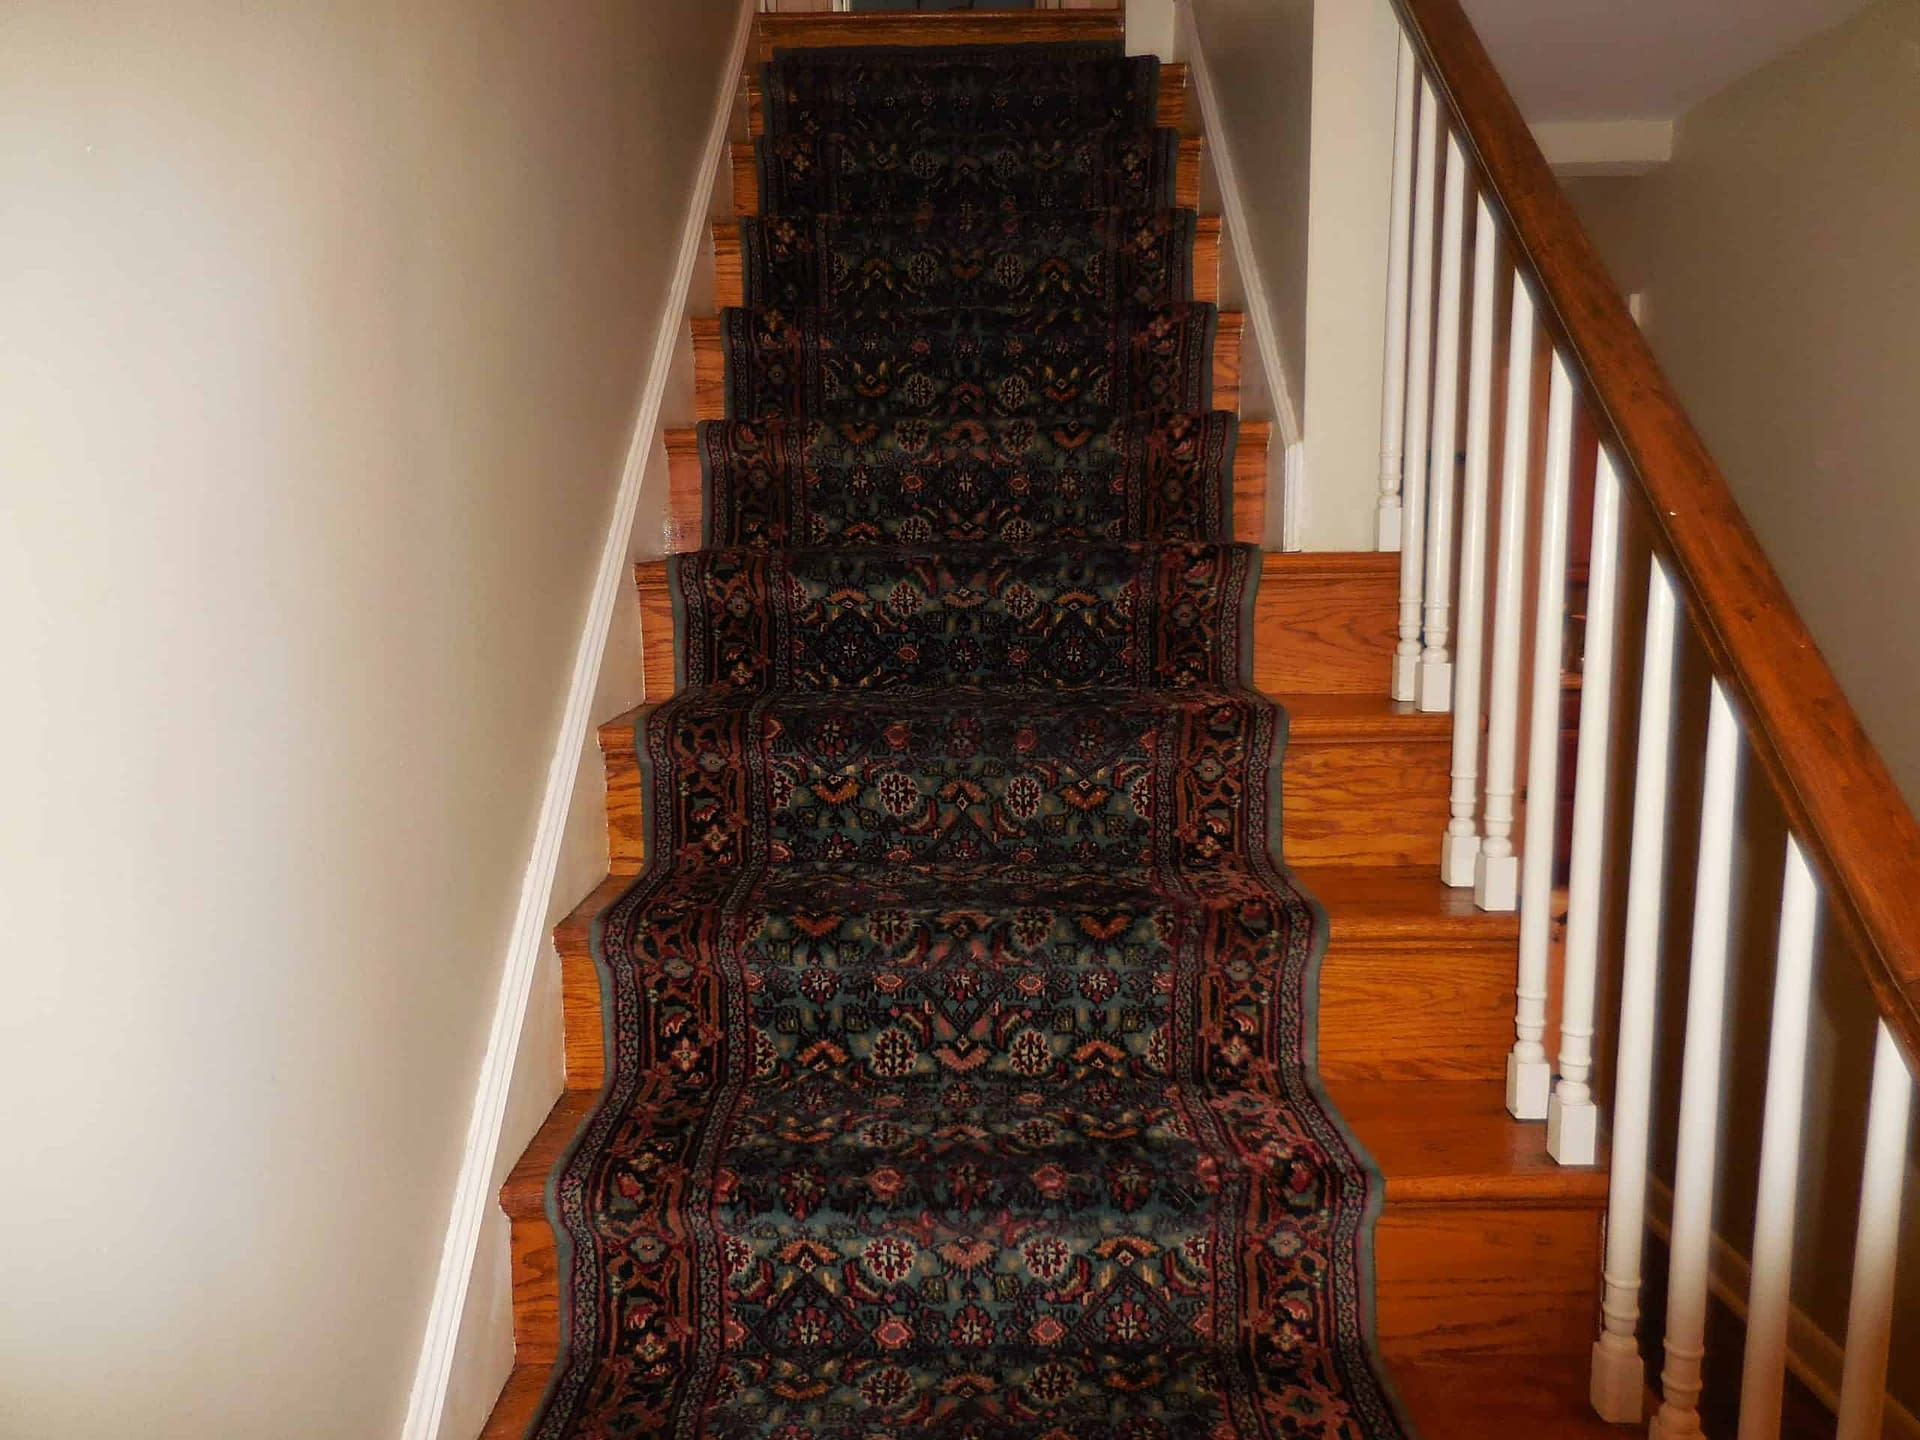 Rug on stairs cleaned in Doylestown, PA